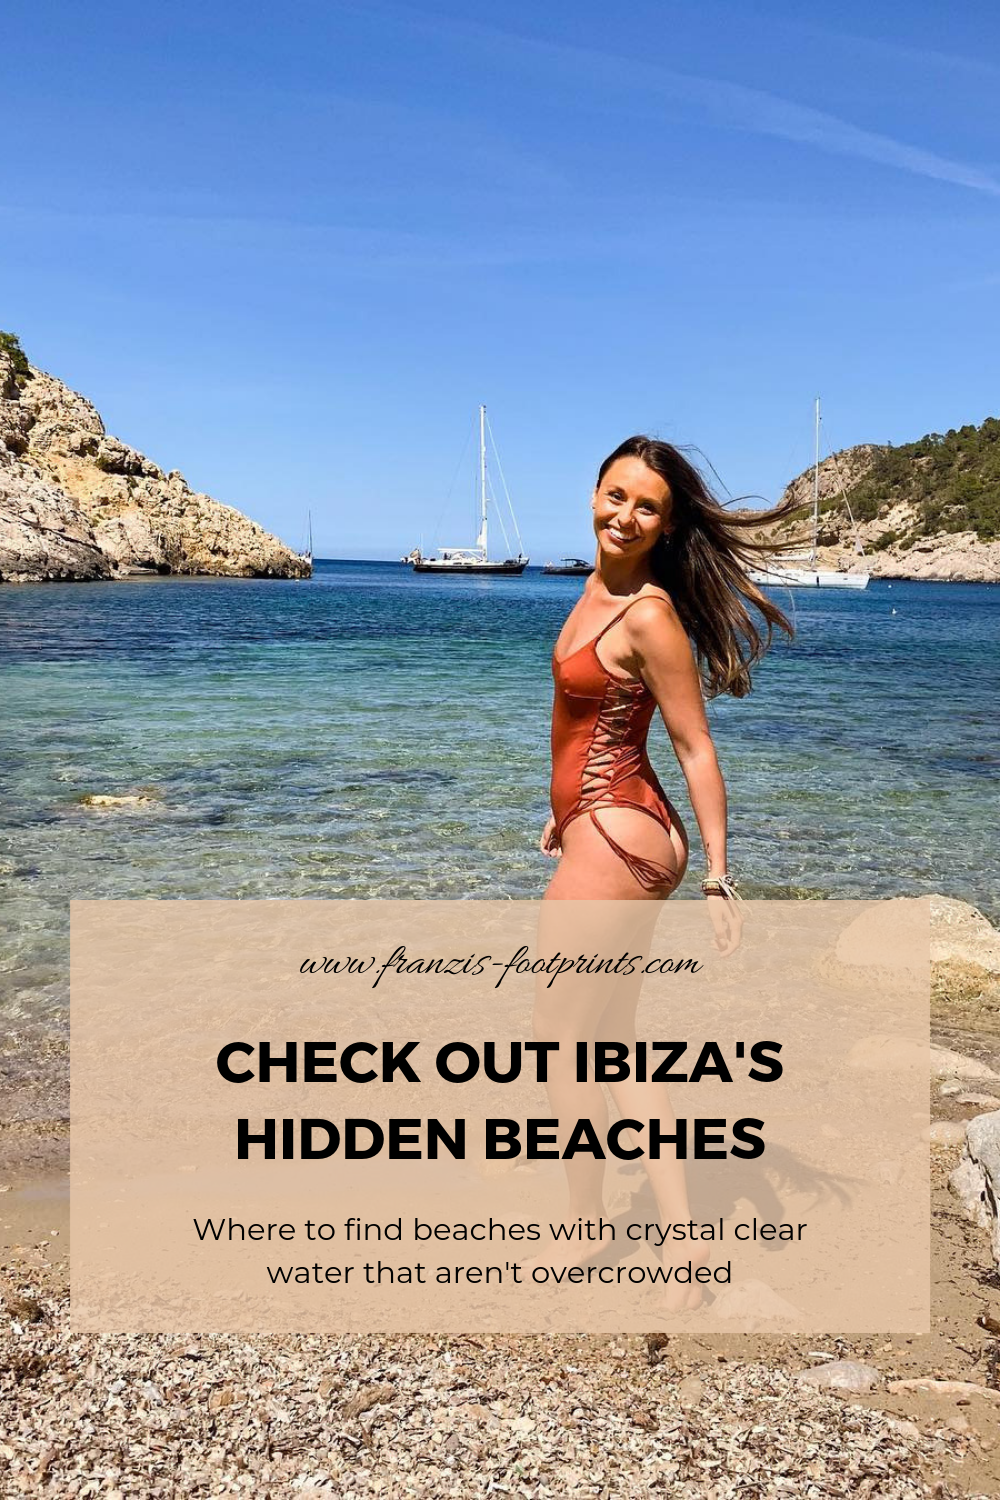 Hidden beaches and secret spots in Ibiza  Let me take you to